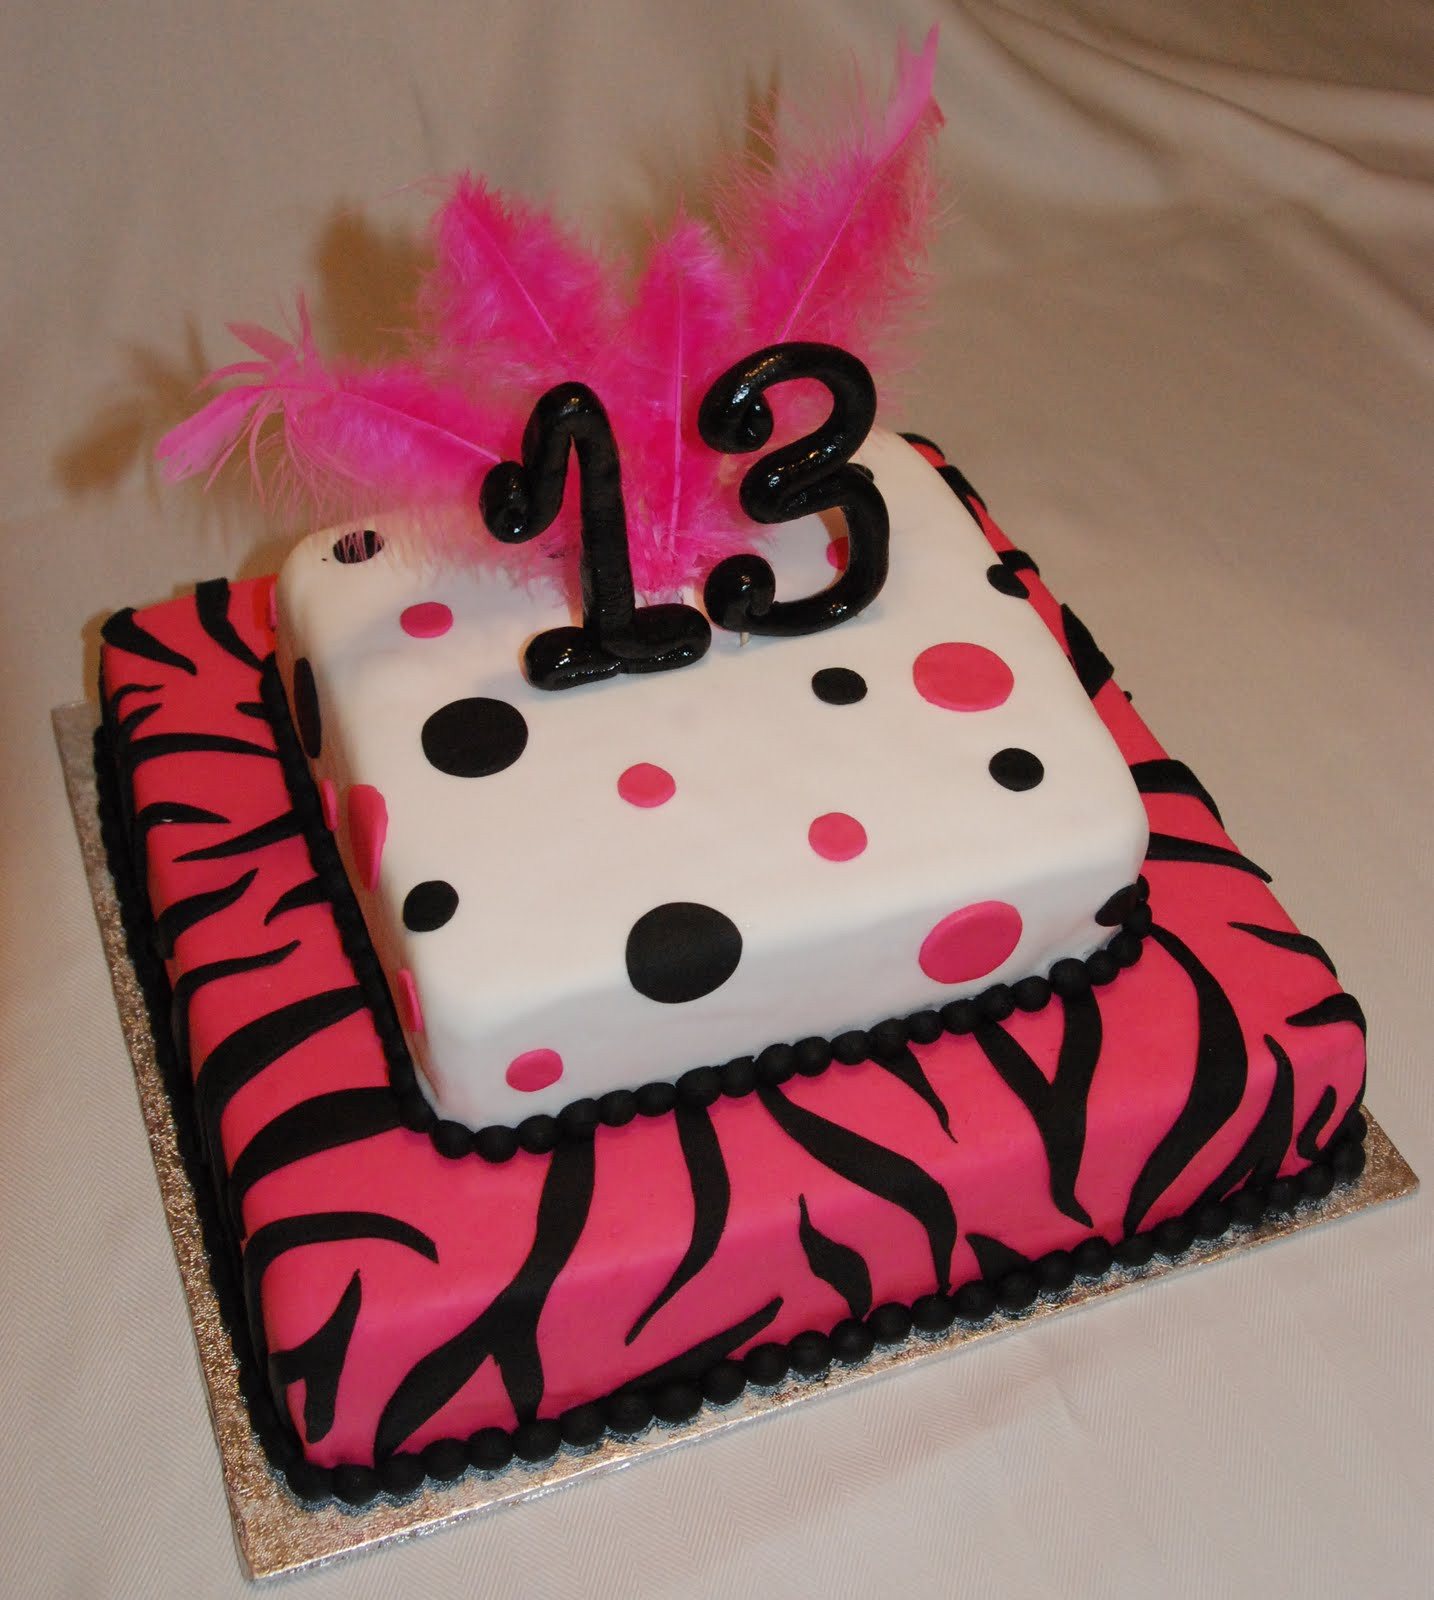 Best ideas about 13 Birthday Cake . Save or Pin Cake Creations by Trish 13th Birthday Cake Now.